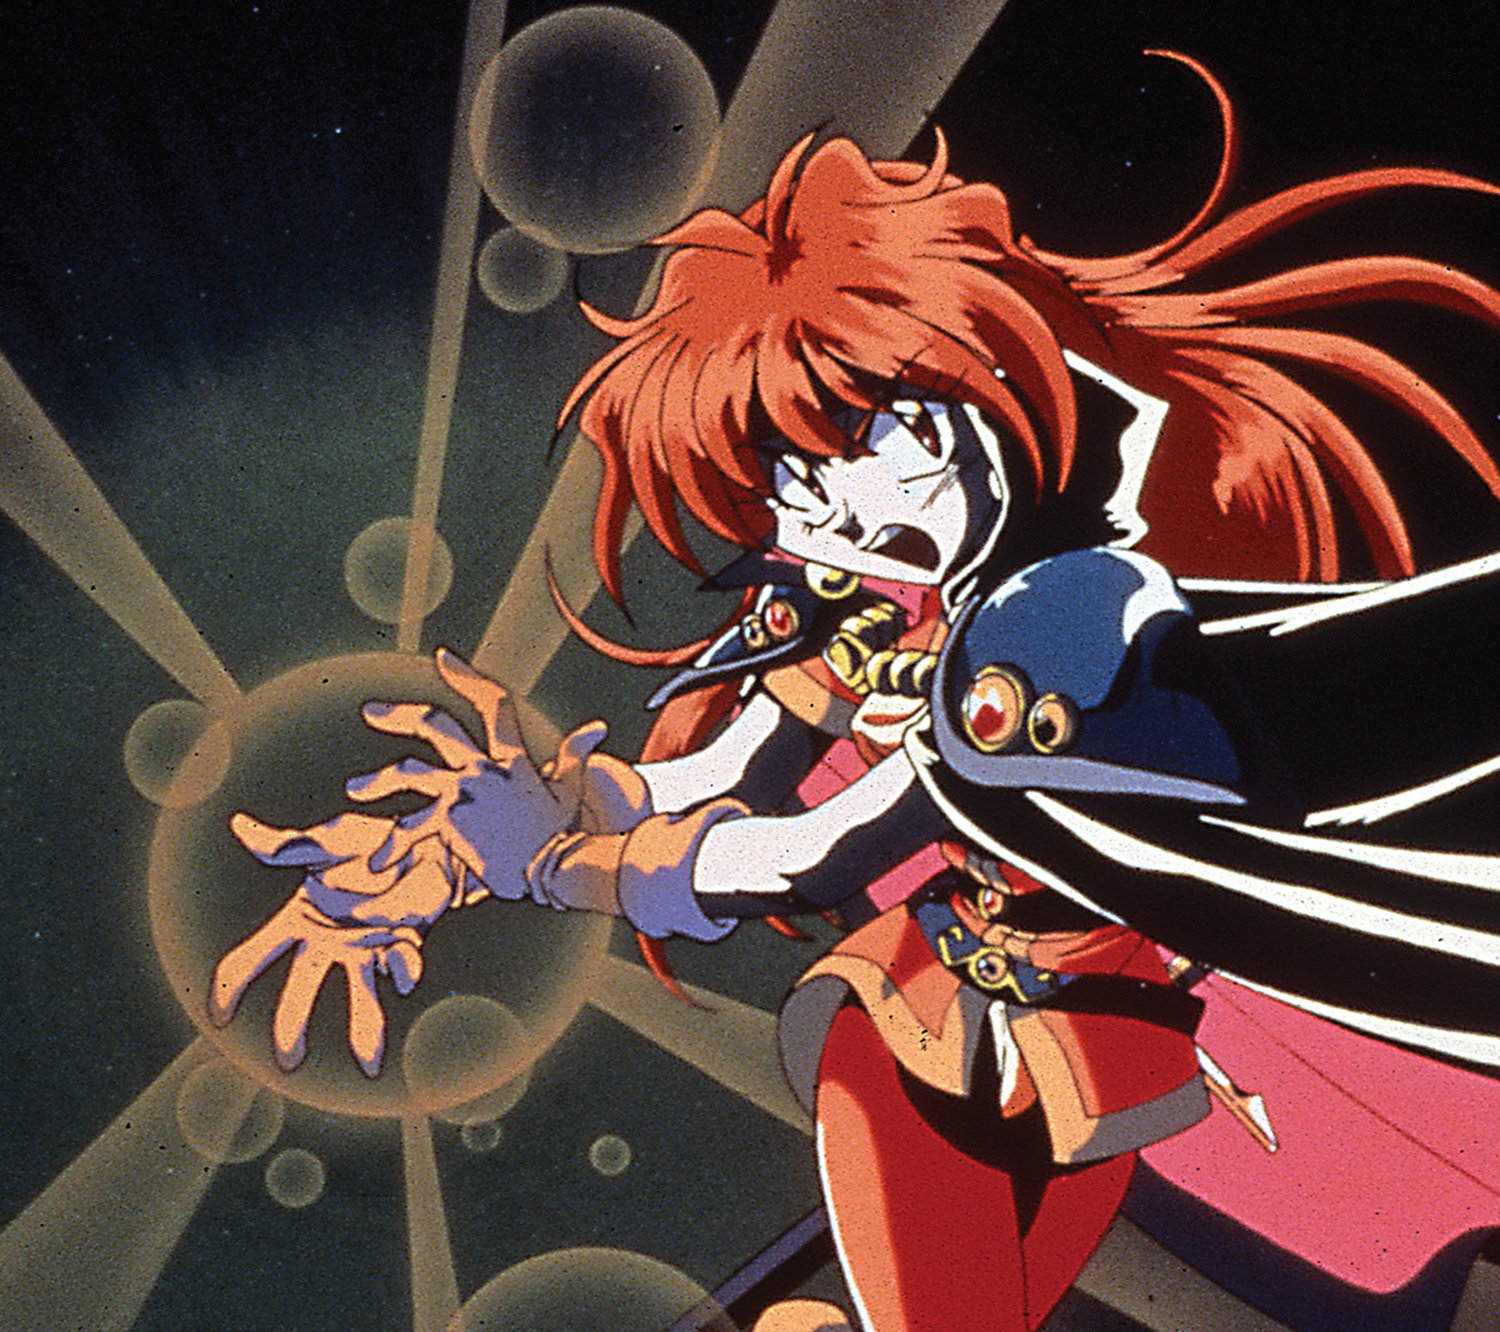 Watch The Slayers Episodes Sub & Dub | Action/Adventure